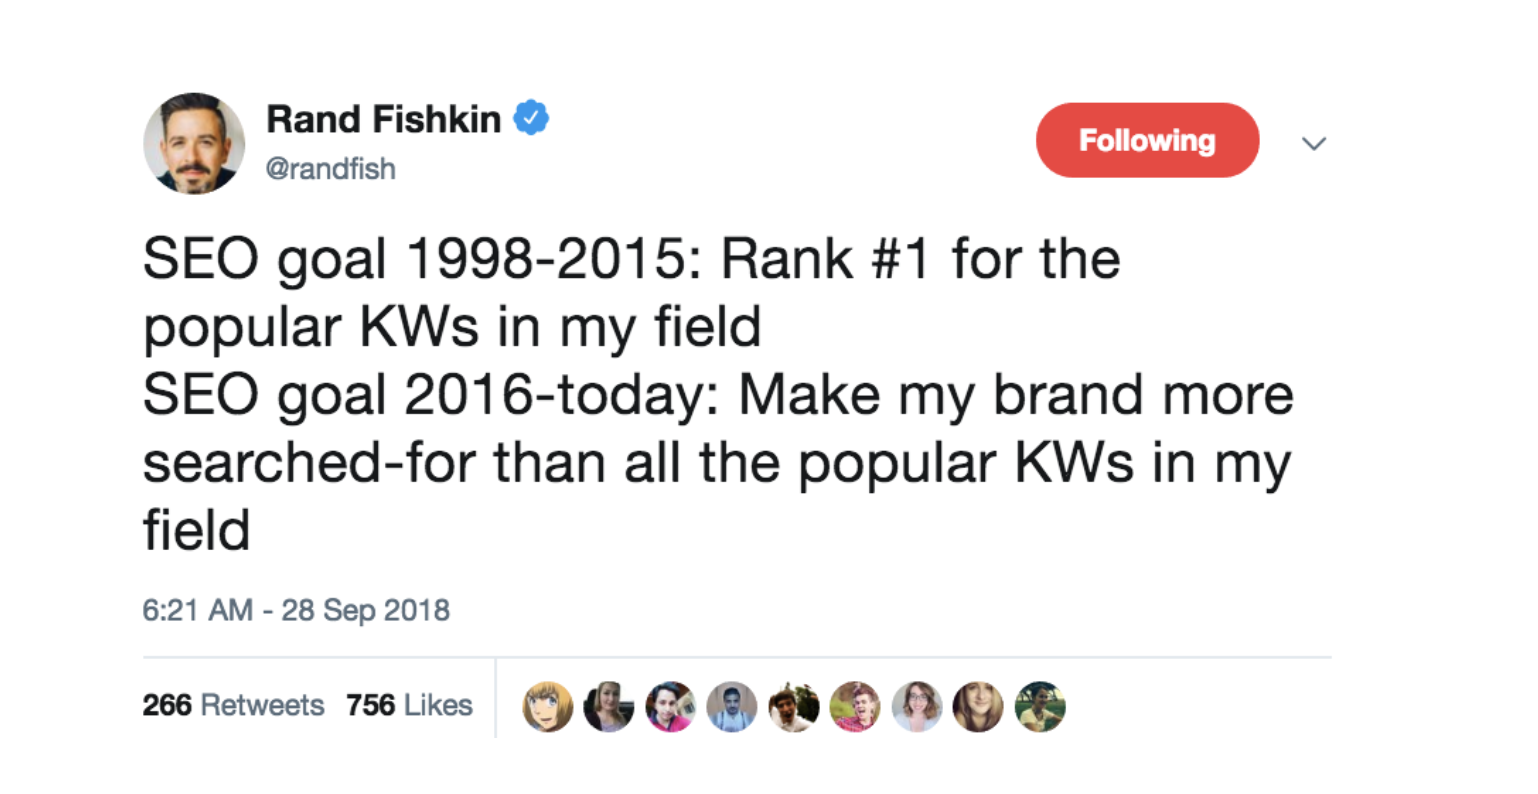 rand fishkin tweet